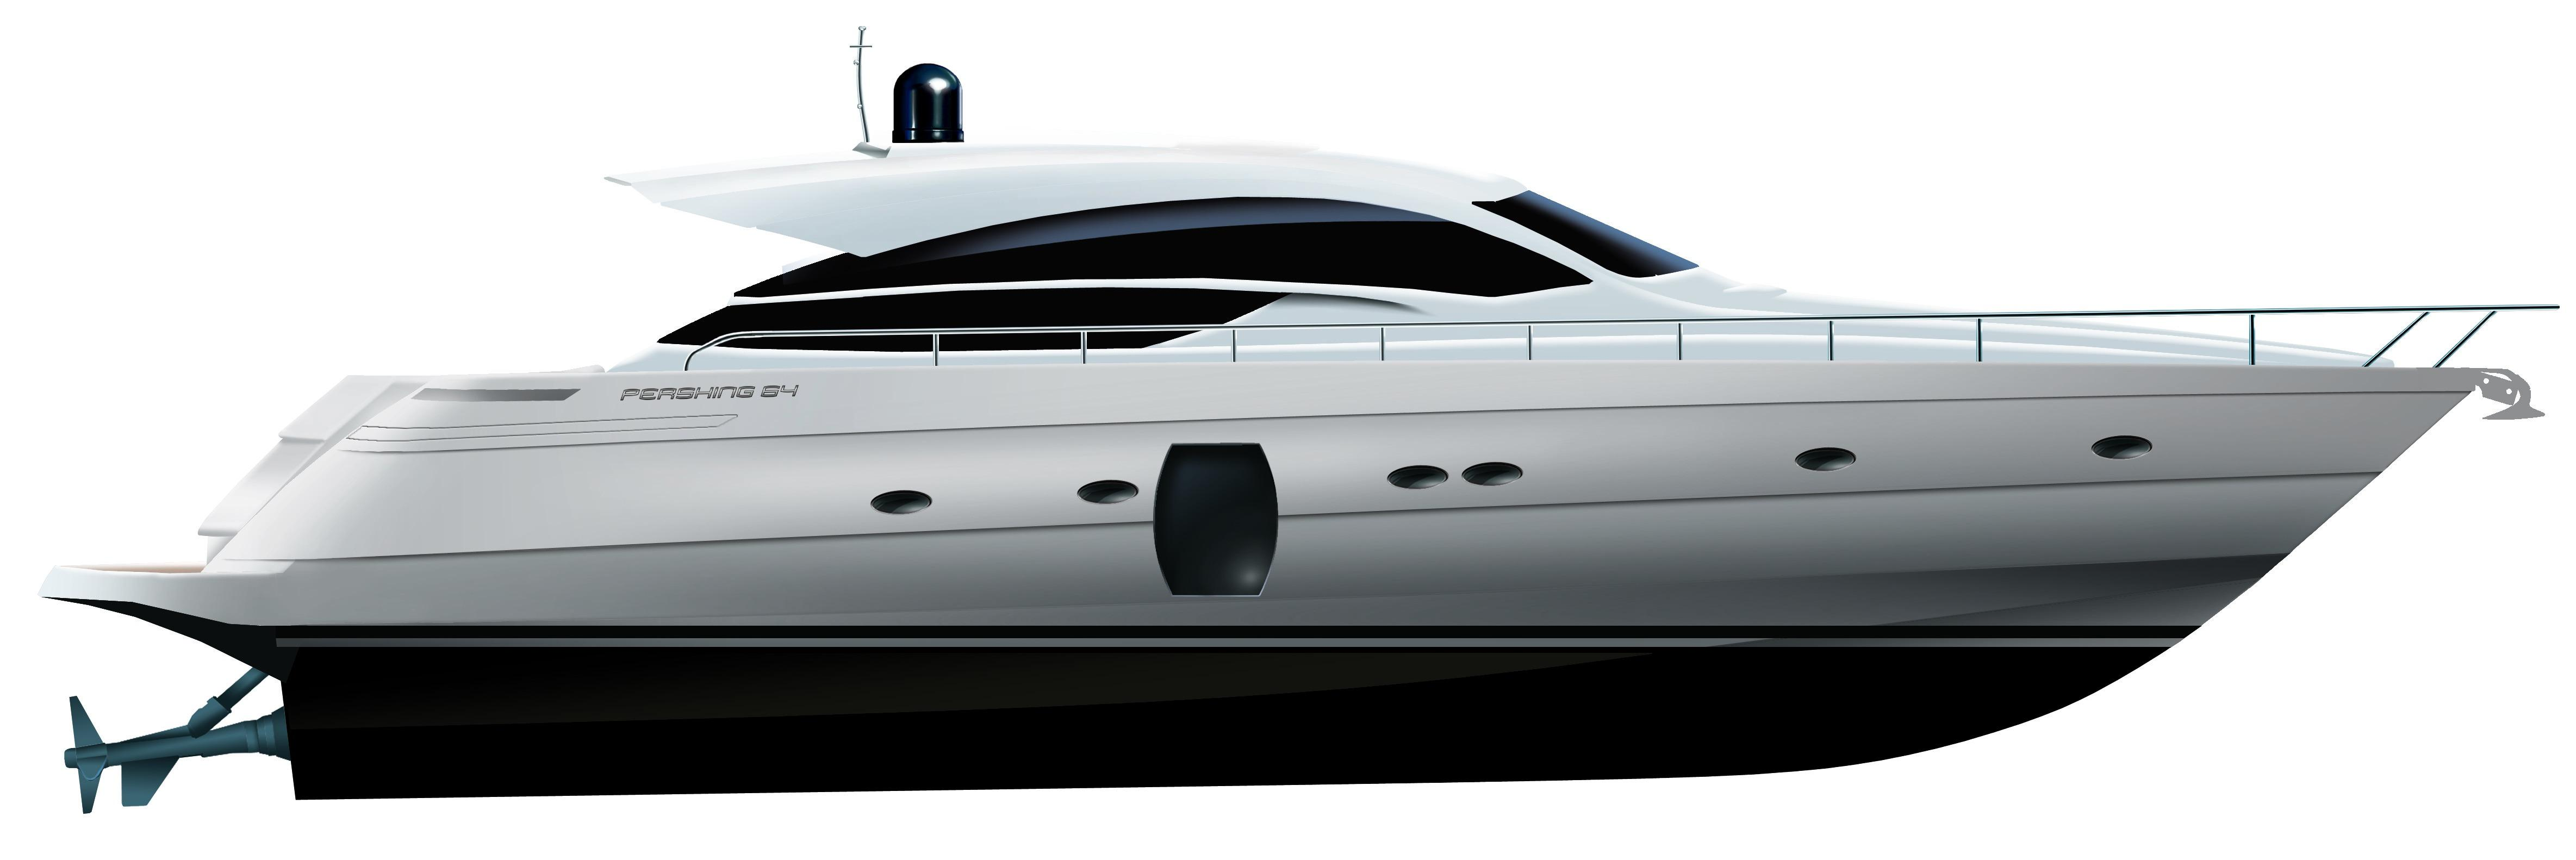 Manufacturer Provided Image: Pershing 64 Profile